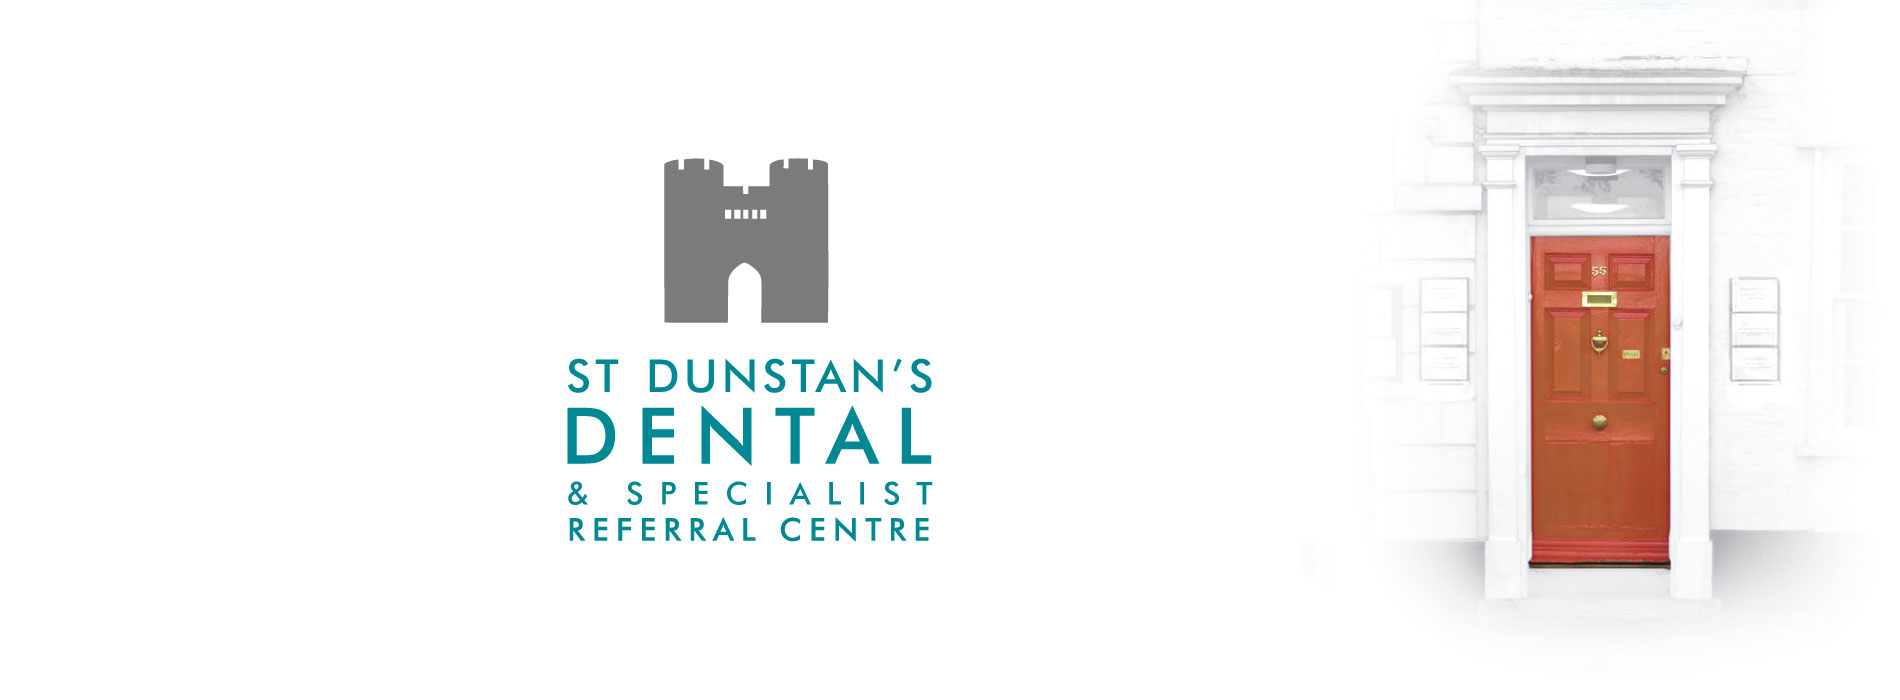 St Dunstan's Dental Practice and Referral Centre